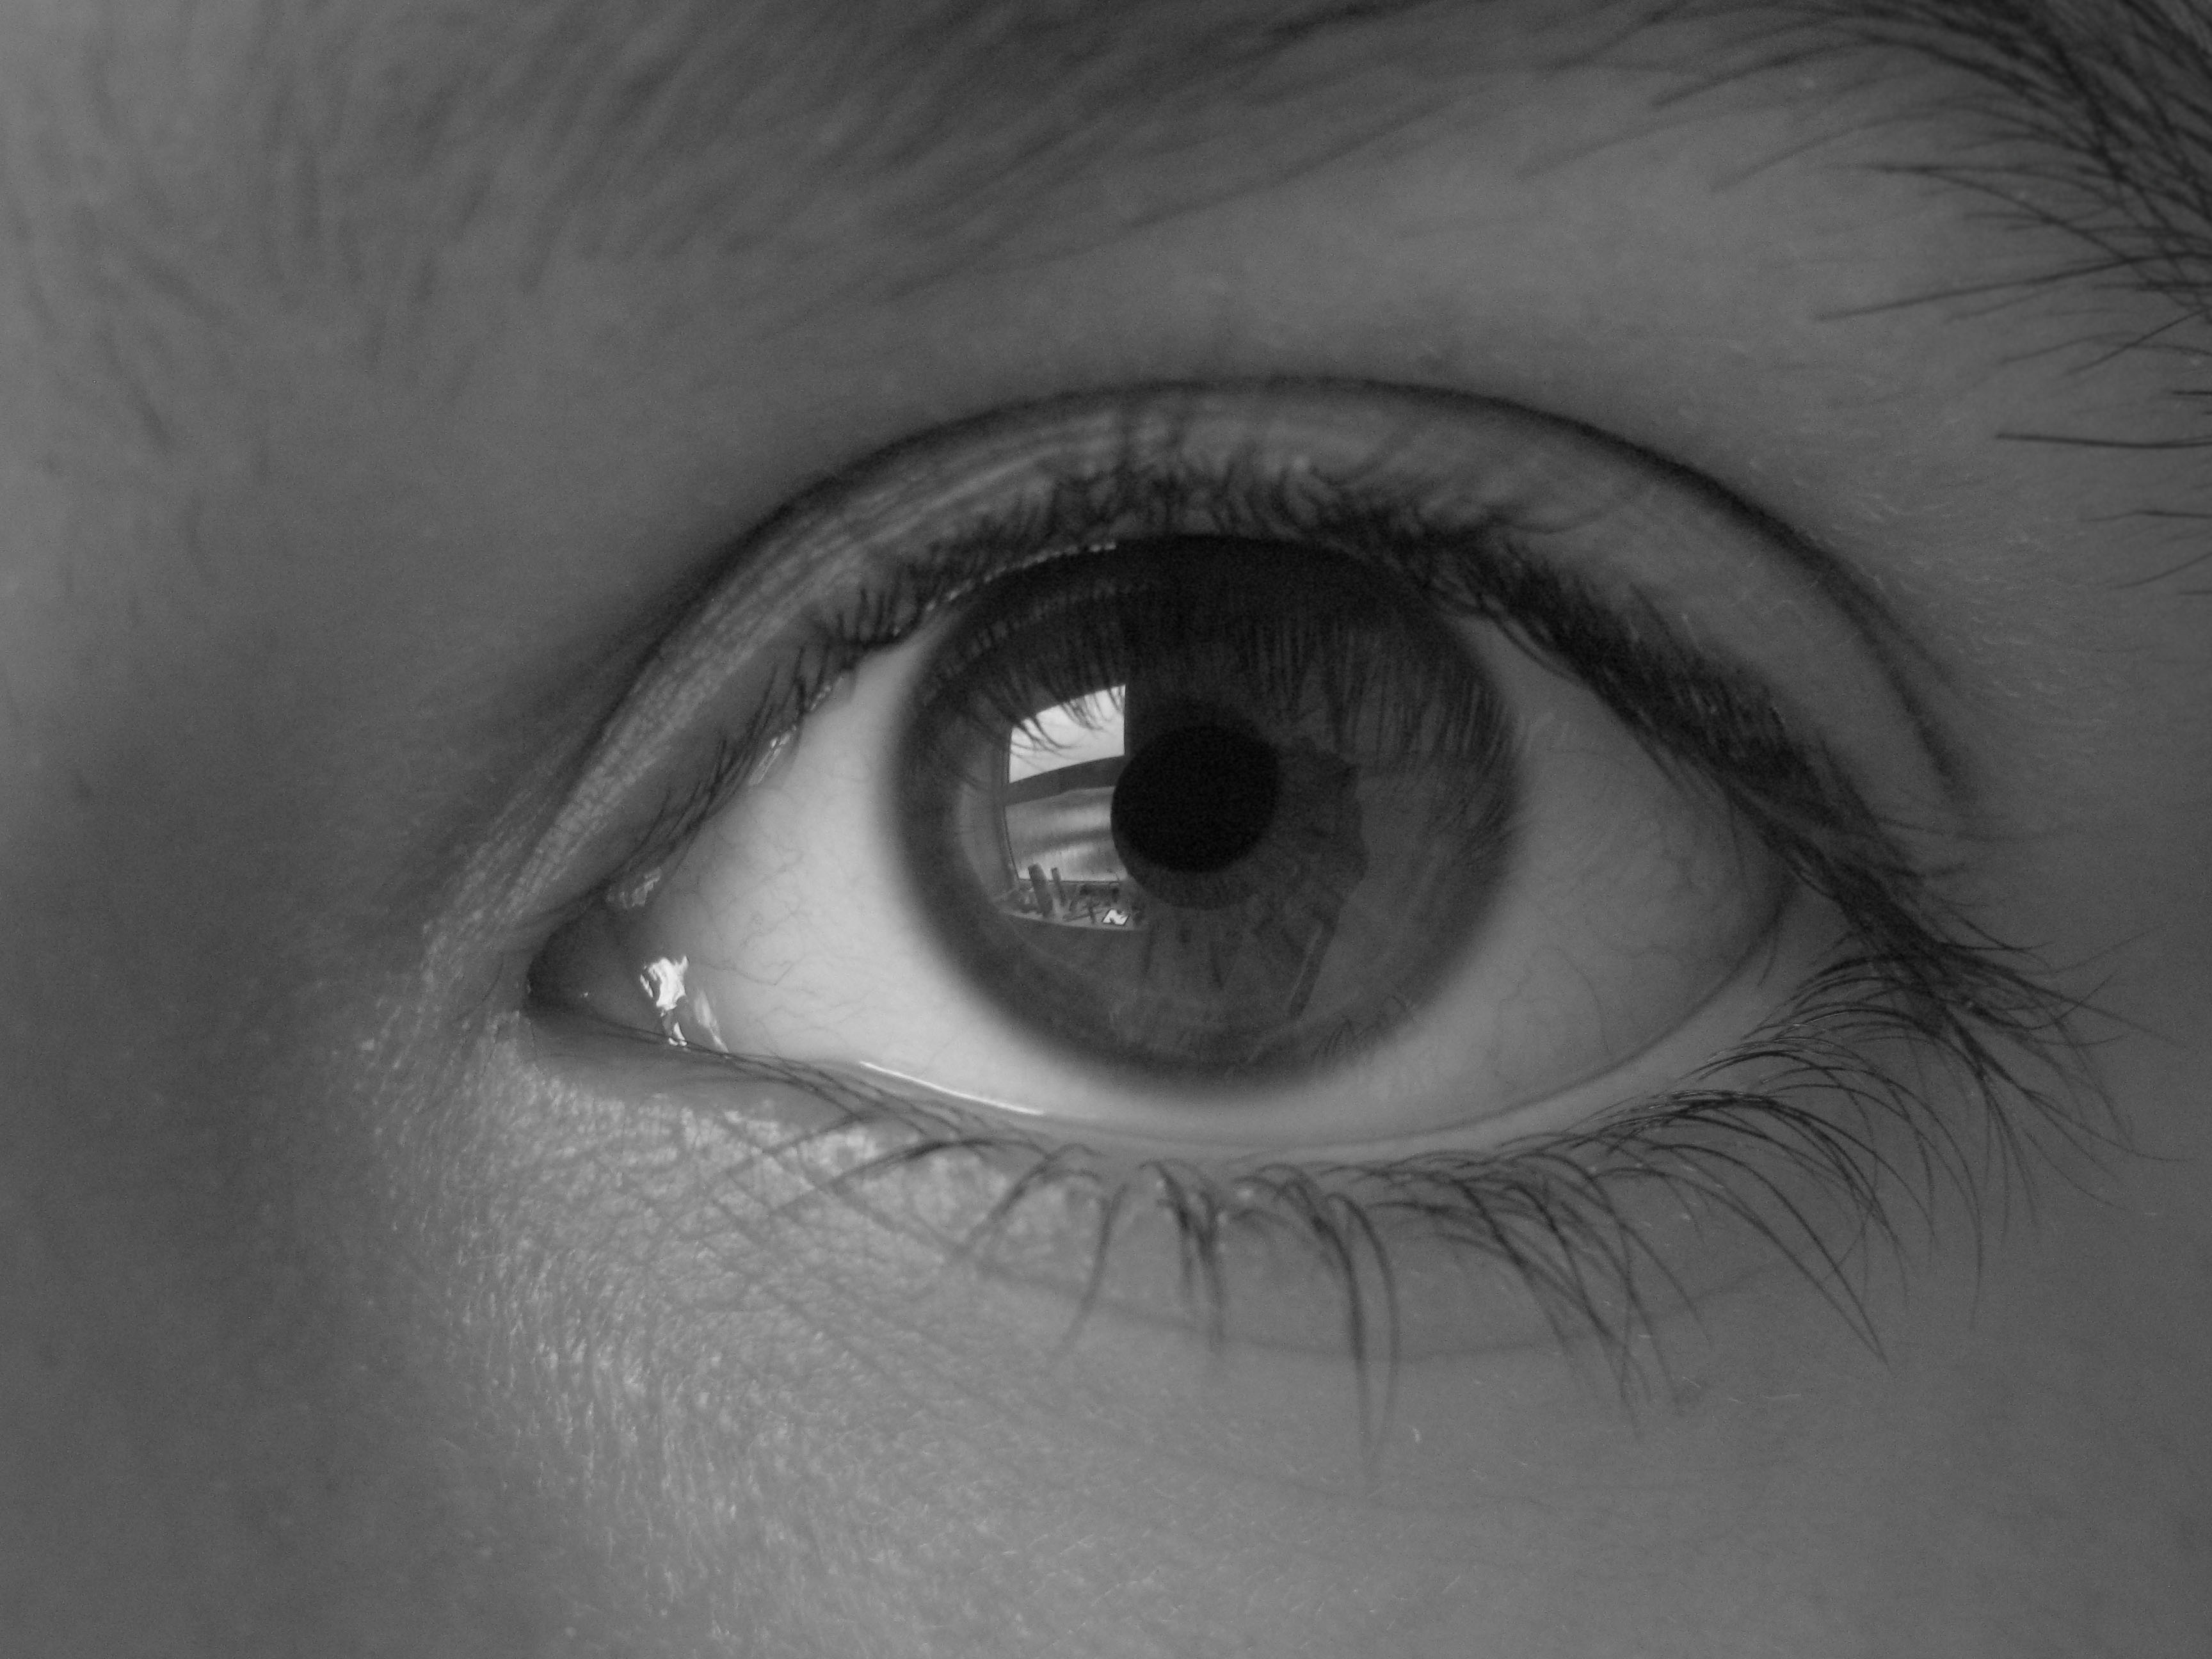 Black and white eye by 666squirrelofdeath i 3 666squirrelofdeaths profile picture